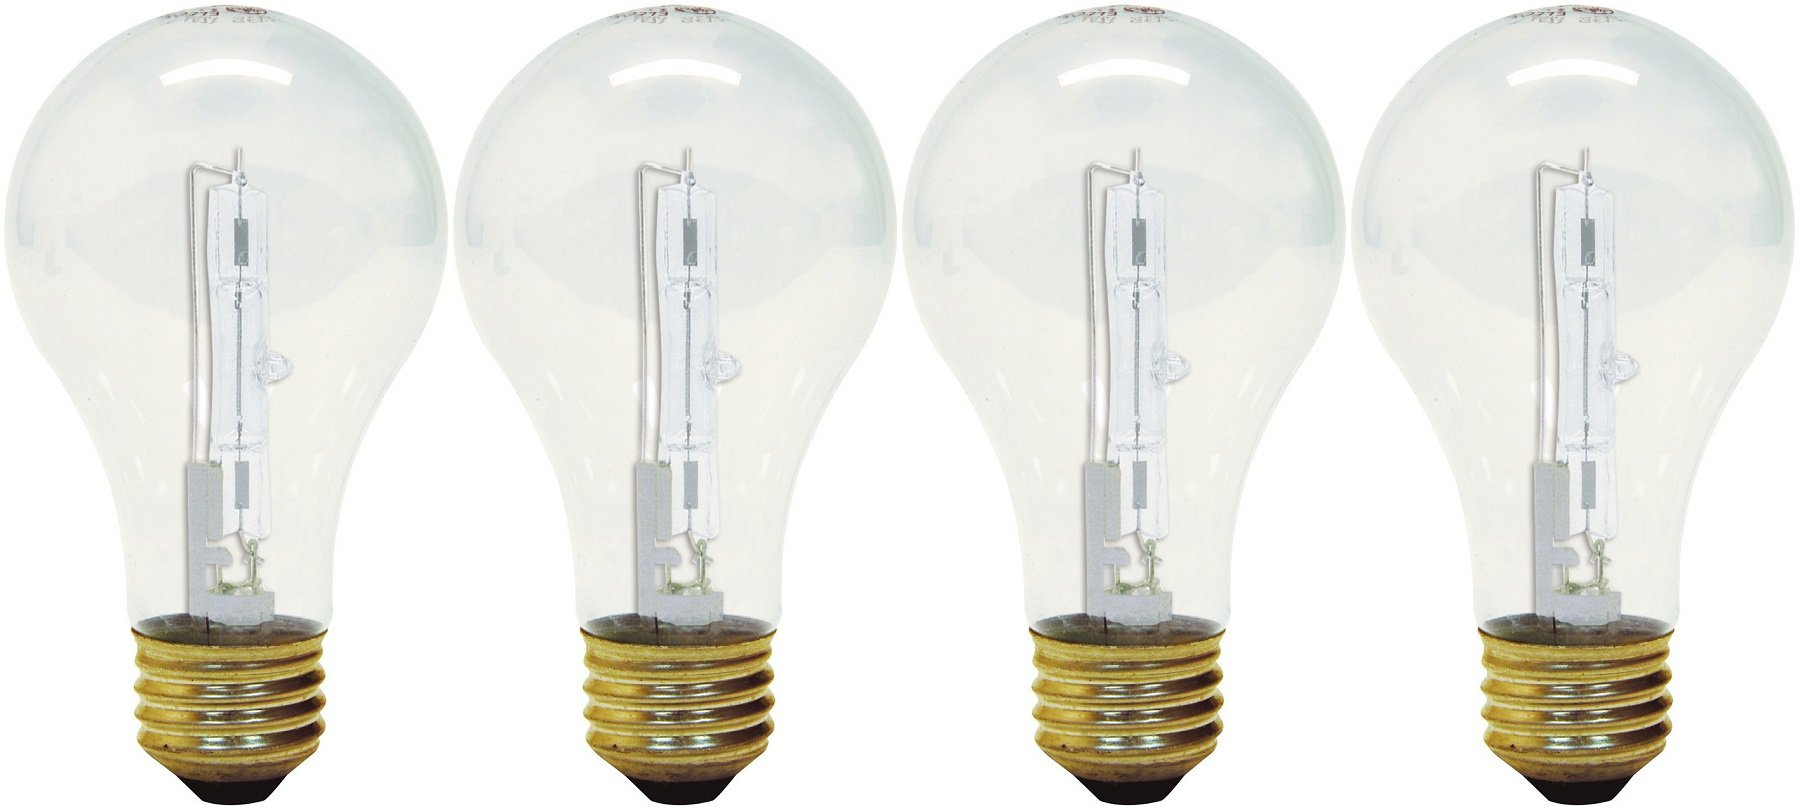 GE Lighting 043168787970 78797 Crystal Clear 53, (75-watt Replacement) 1050-Lumen A19 Light Bulb with Medium Base, 4-Pack, 4 Count